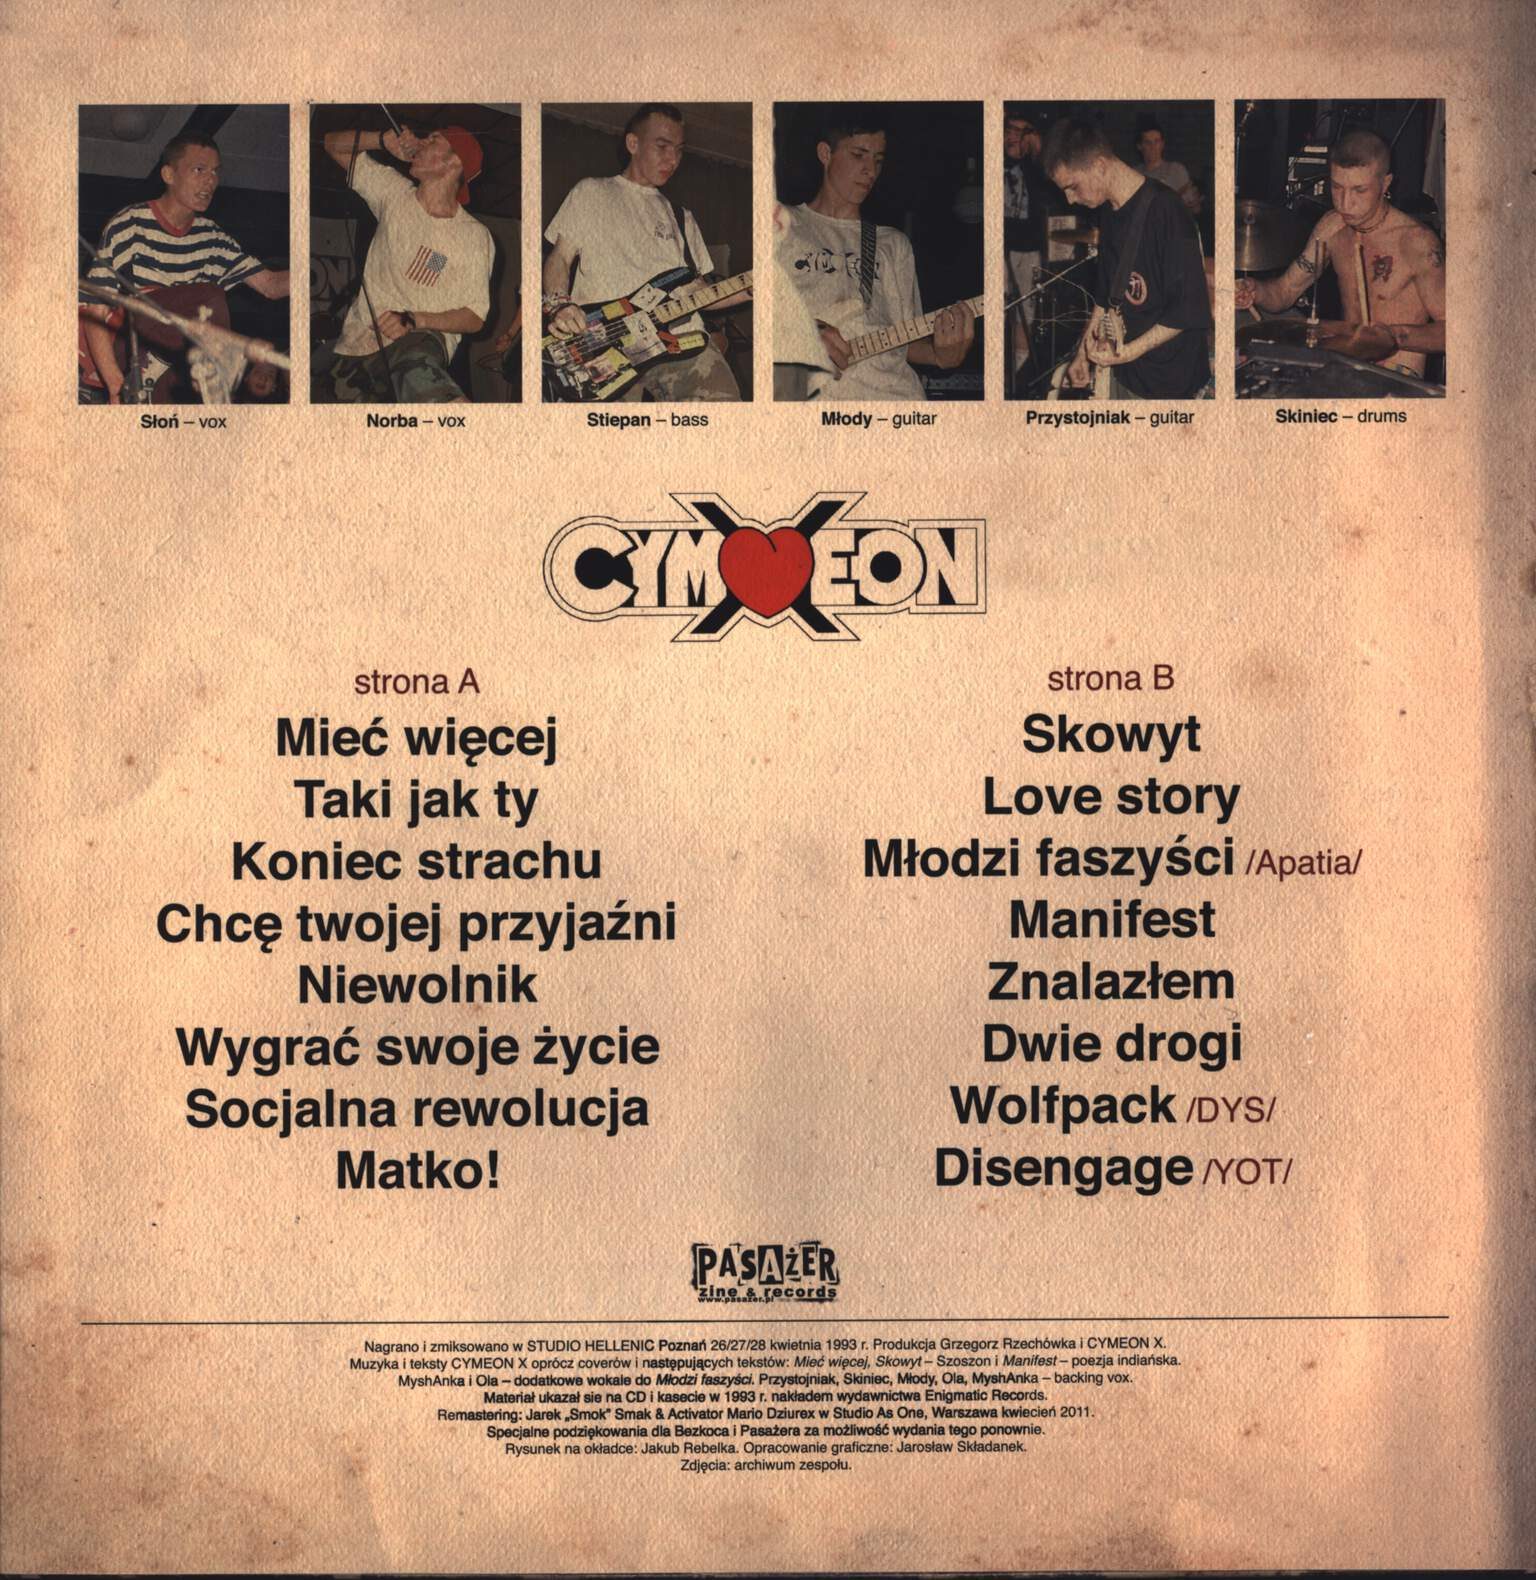 Cymeon X: Free Your Mind Free Your Body, LP (Vinyl)